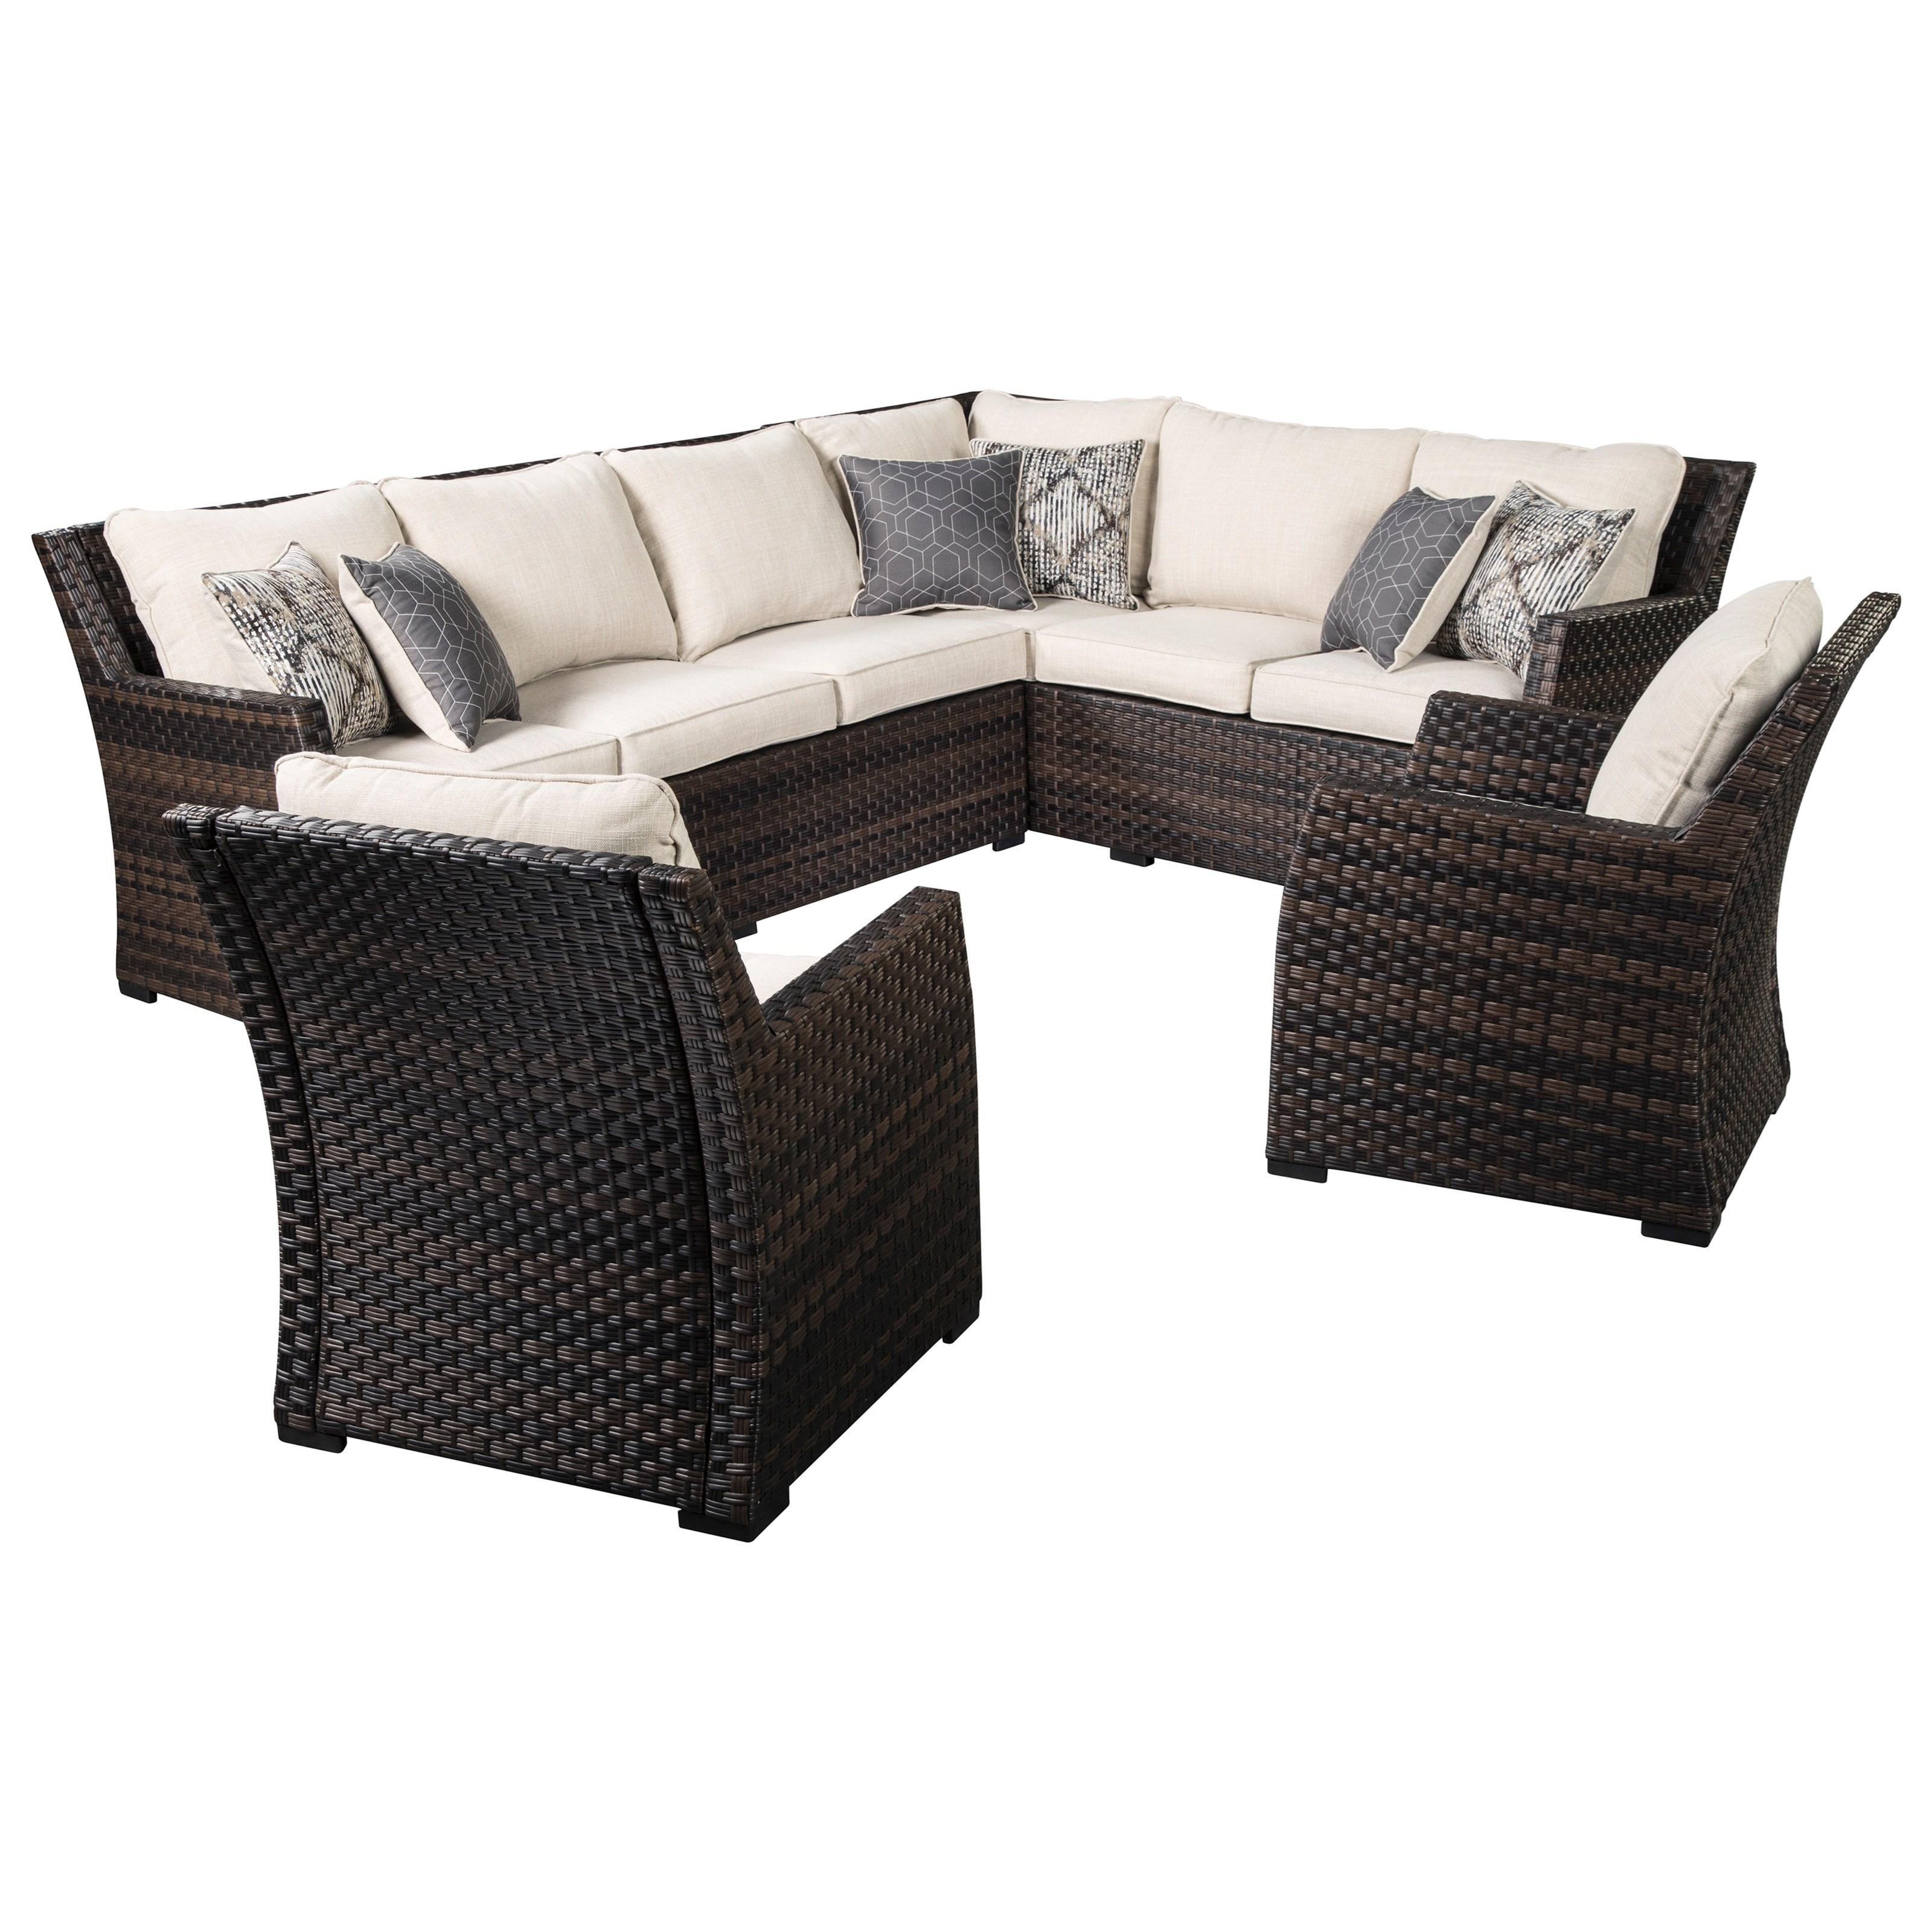 easy isle outdoor 2 piece sectional 2 lounge chairs